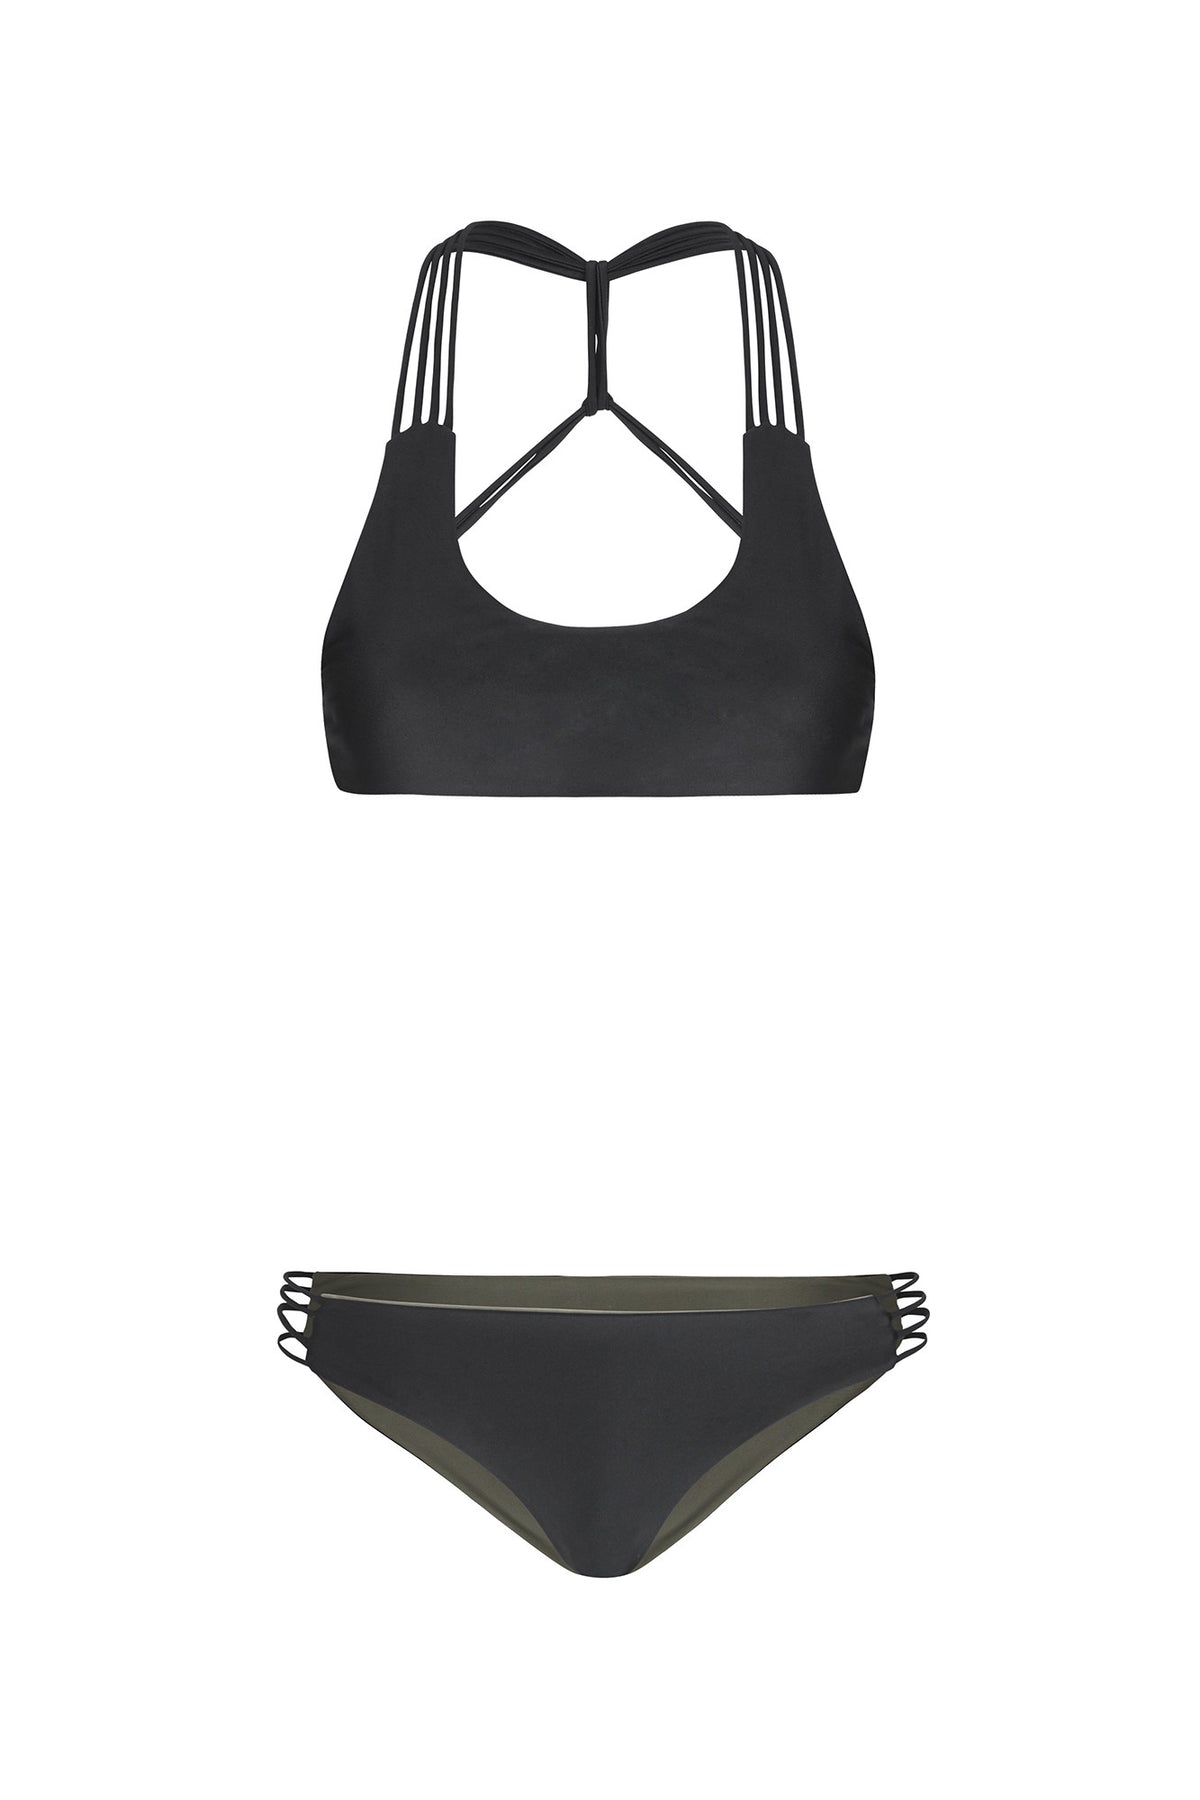 """Tyra"" T-Back Reversible Bikini [Barcelona Black / Canadian Khaki]"